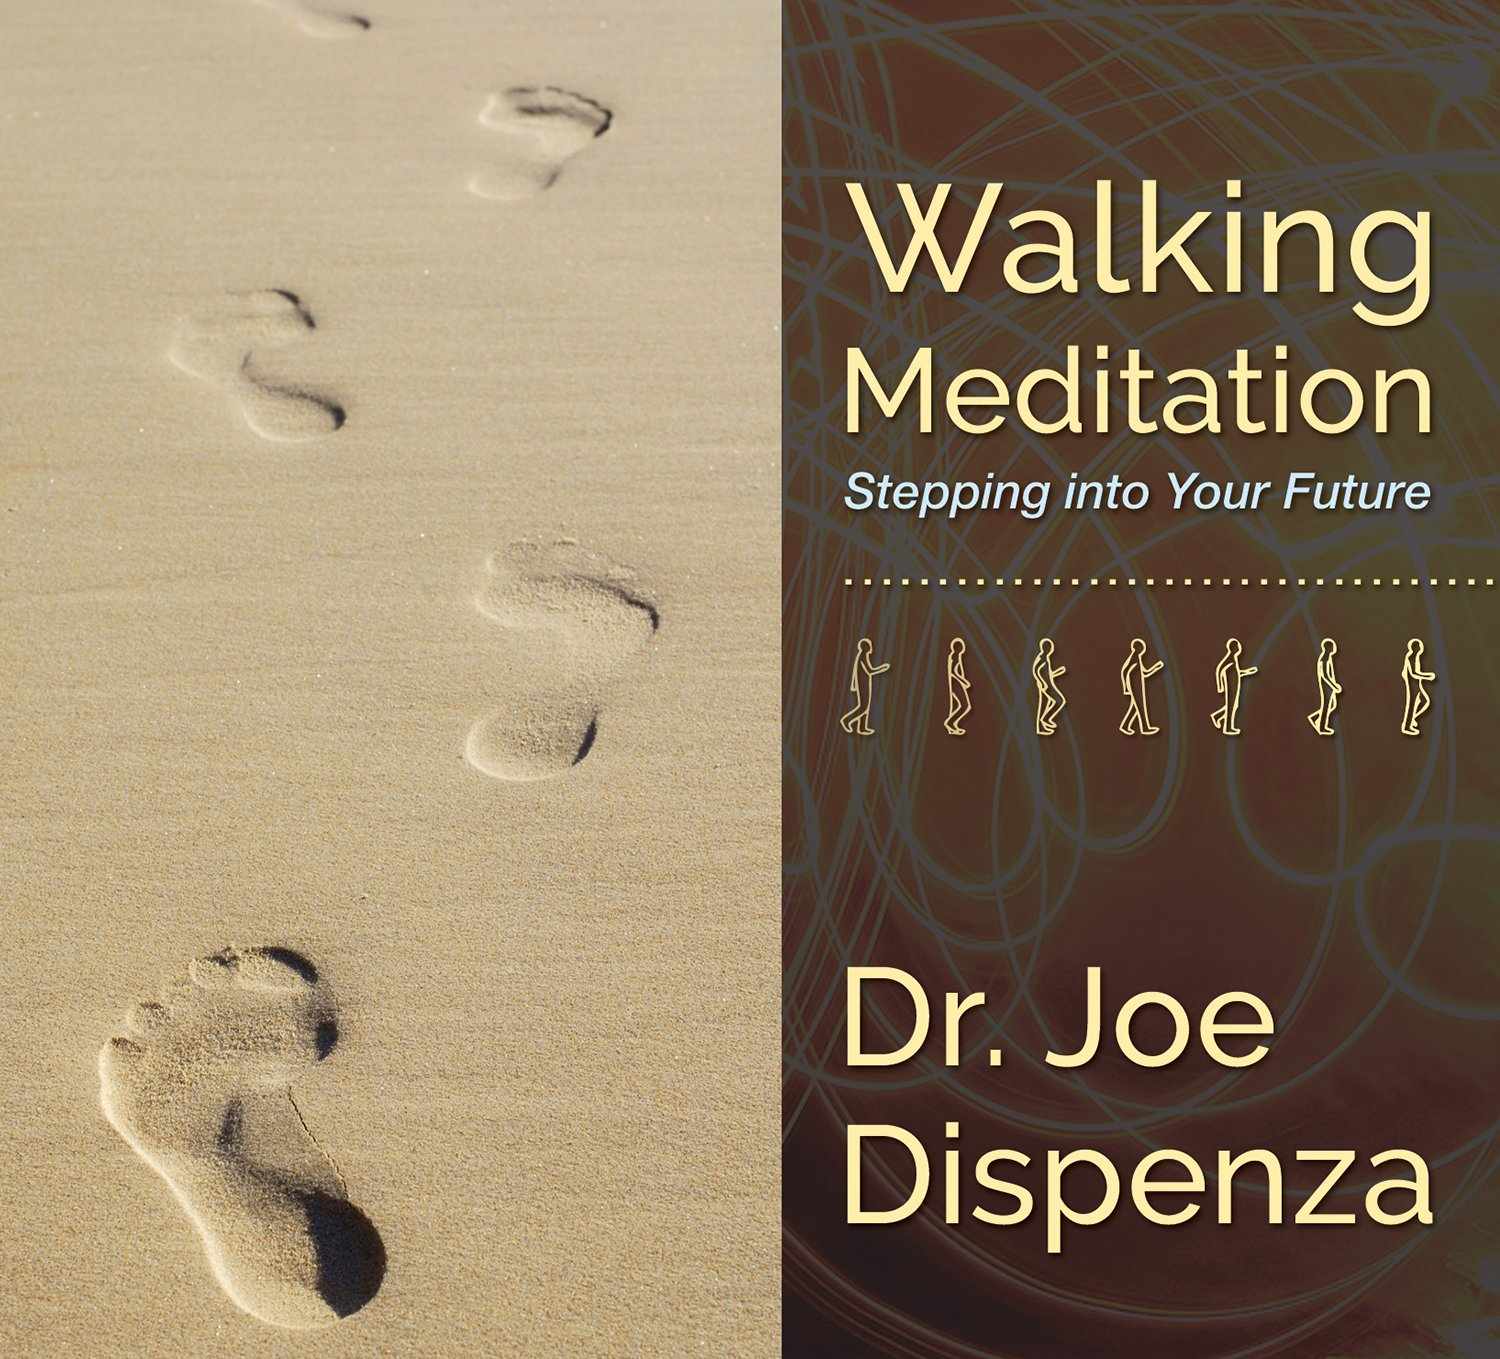 Walking Meditation: Stepping into Your Future by Cd Baby